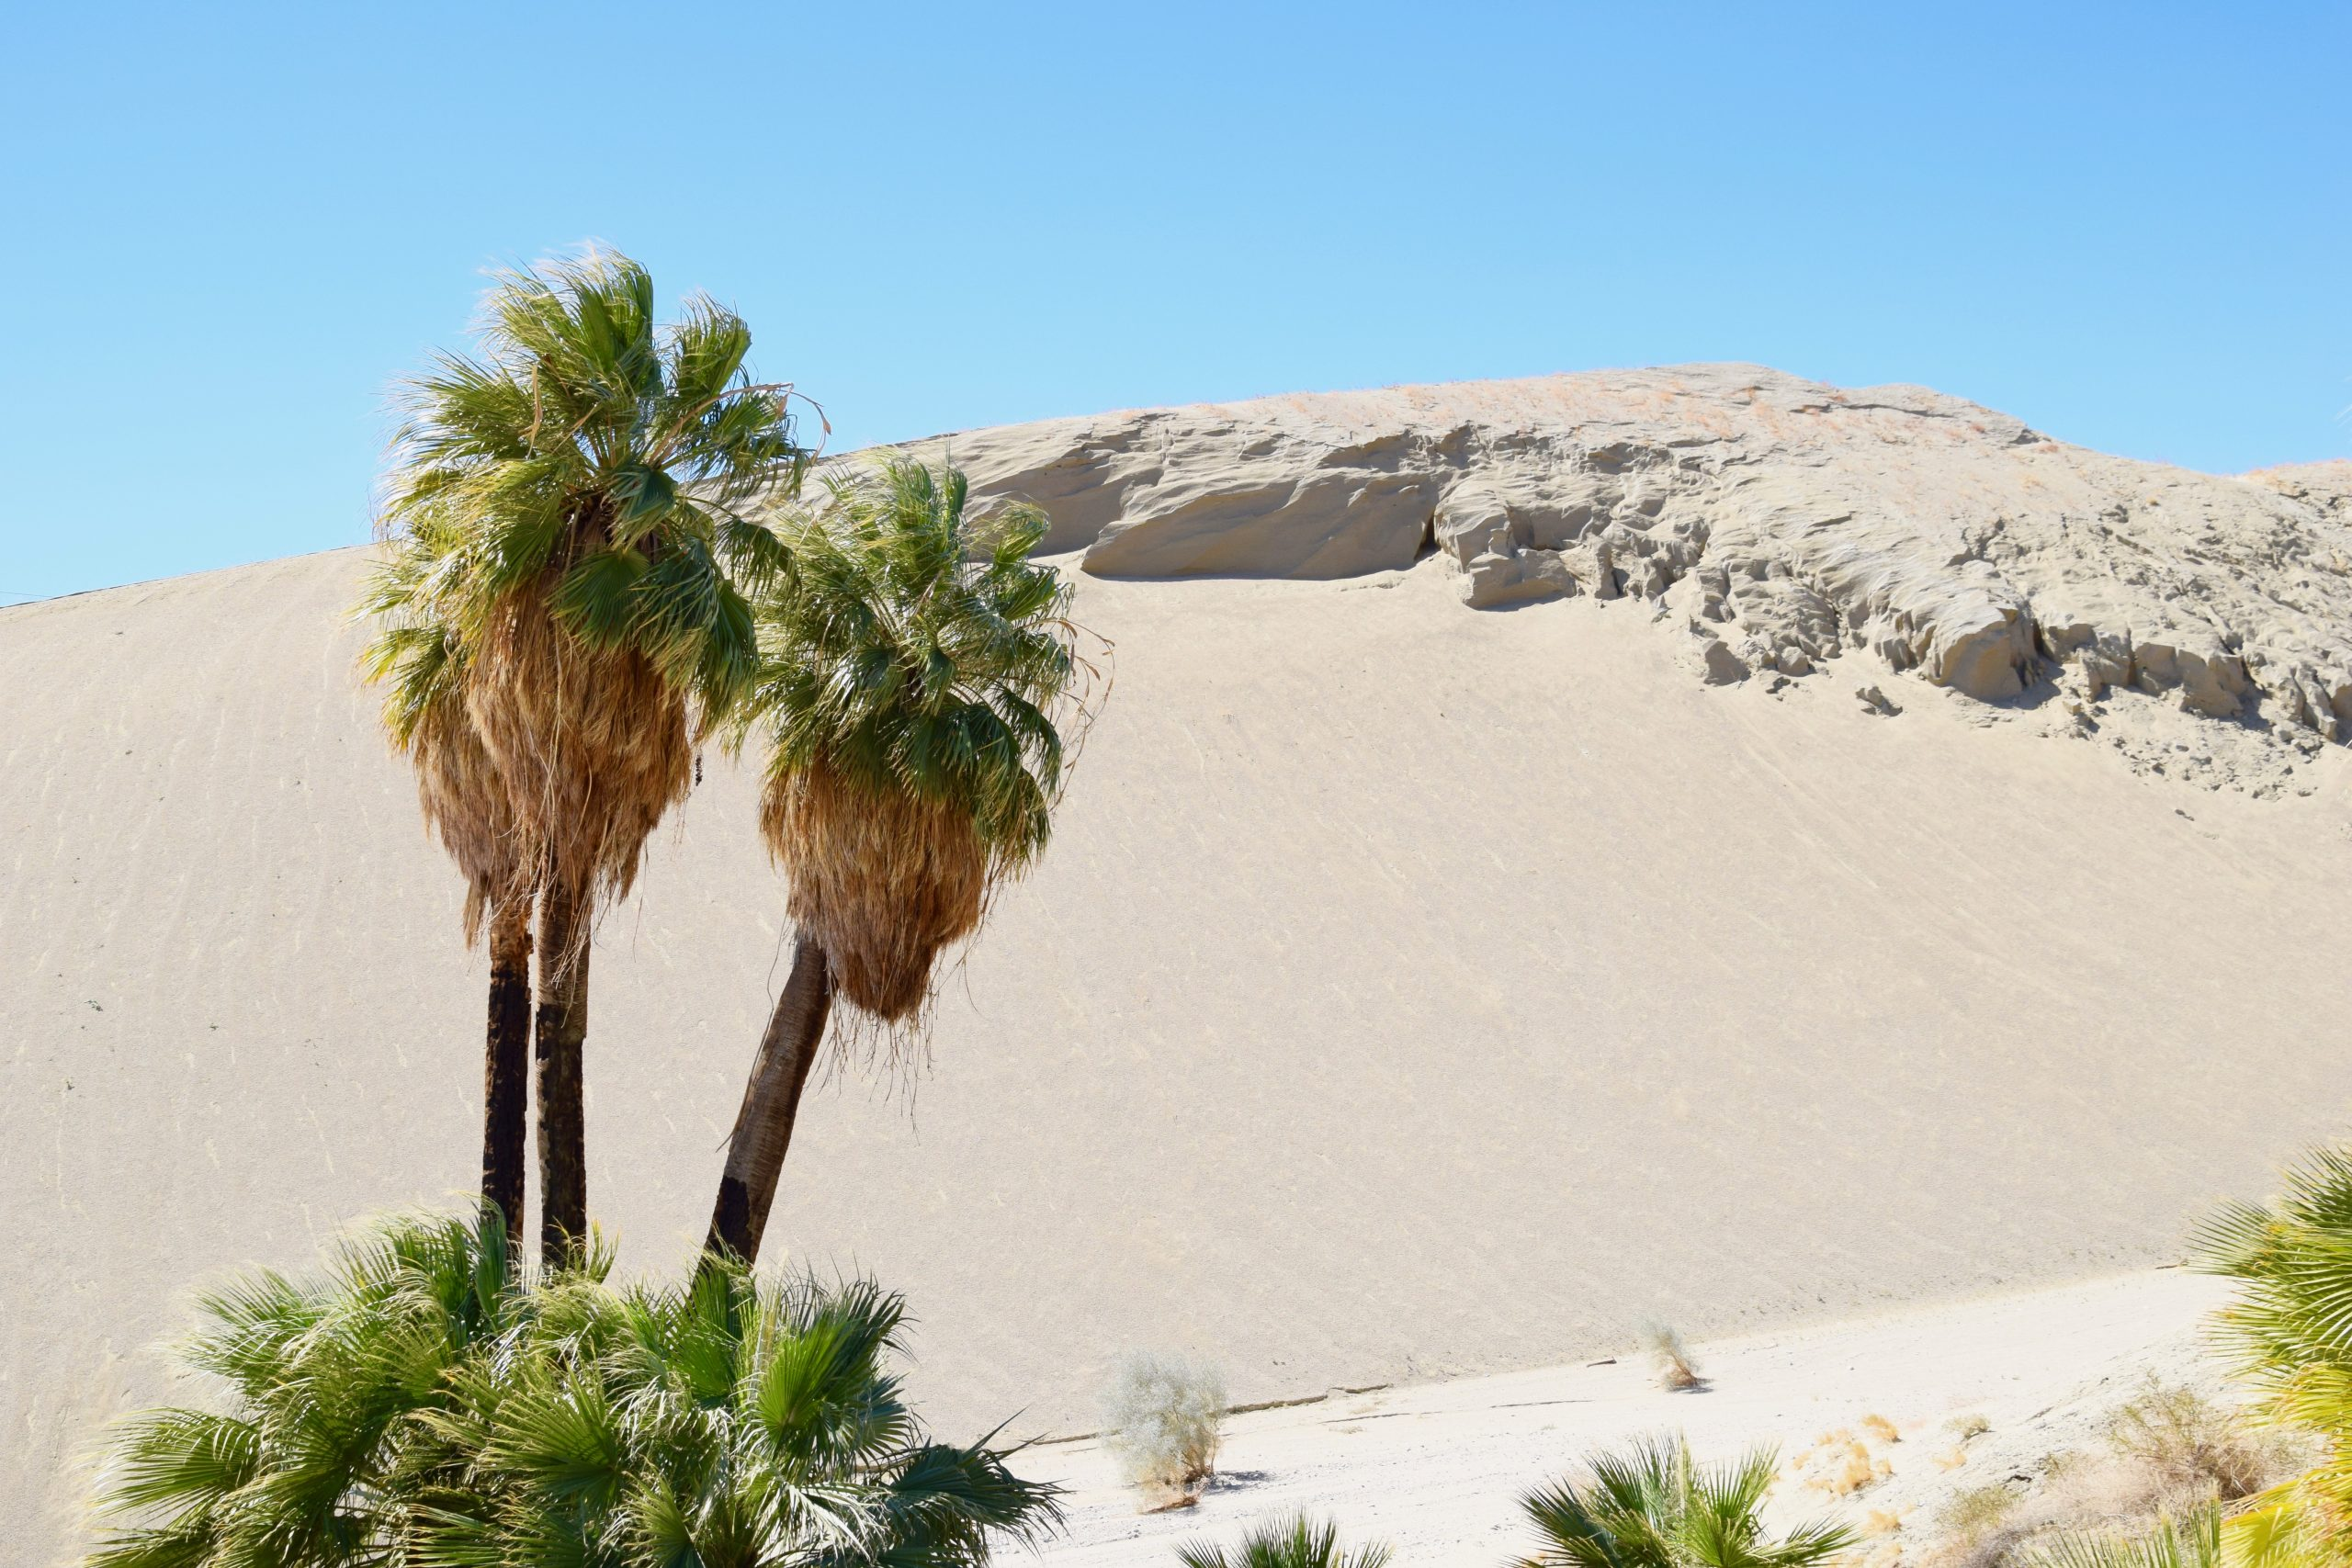 Desert sand dunes with palm trees and blue sky in Palm Springs, CA